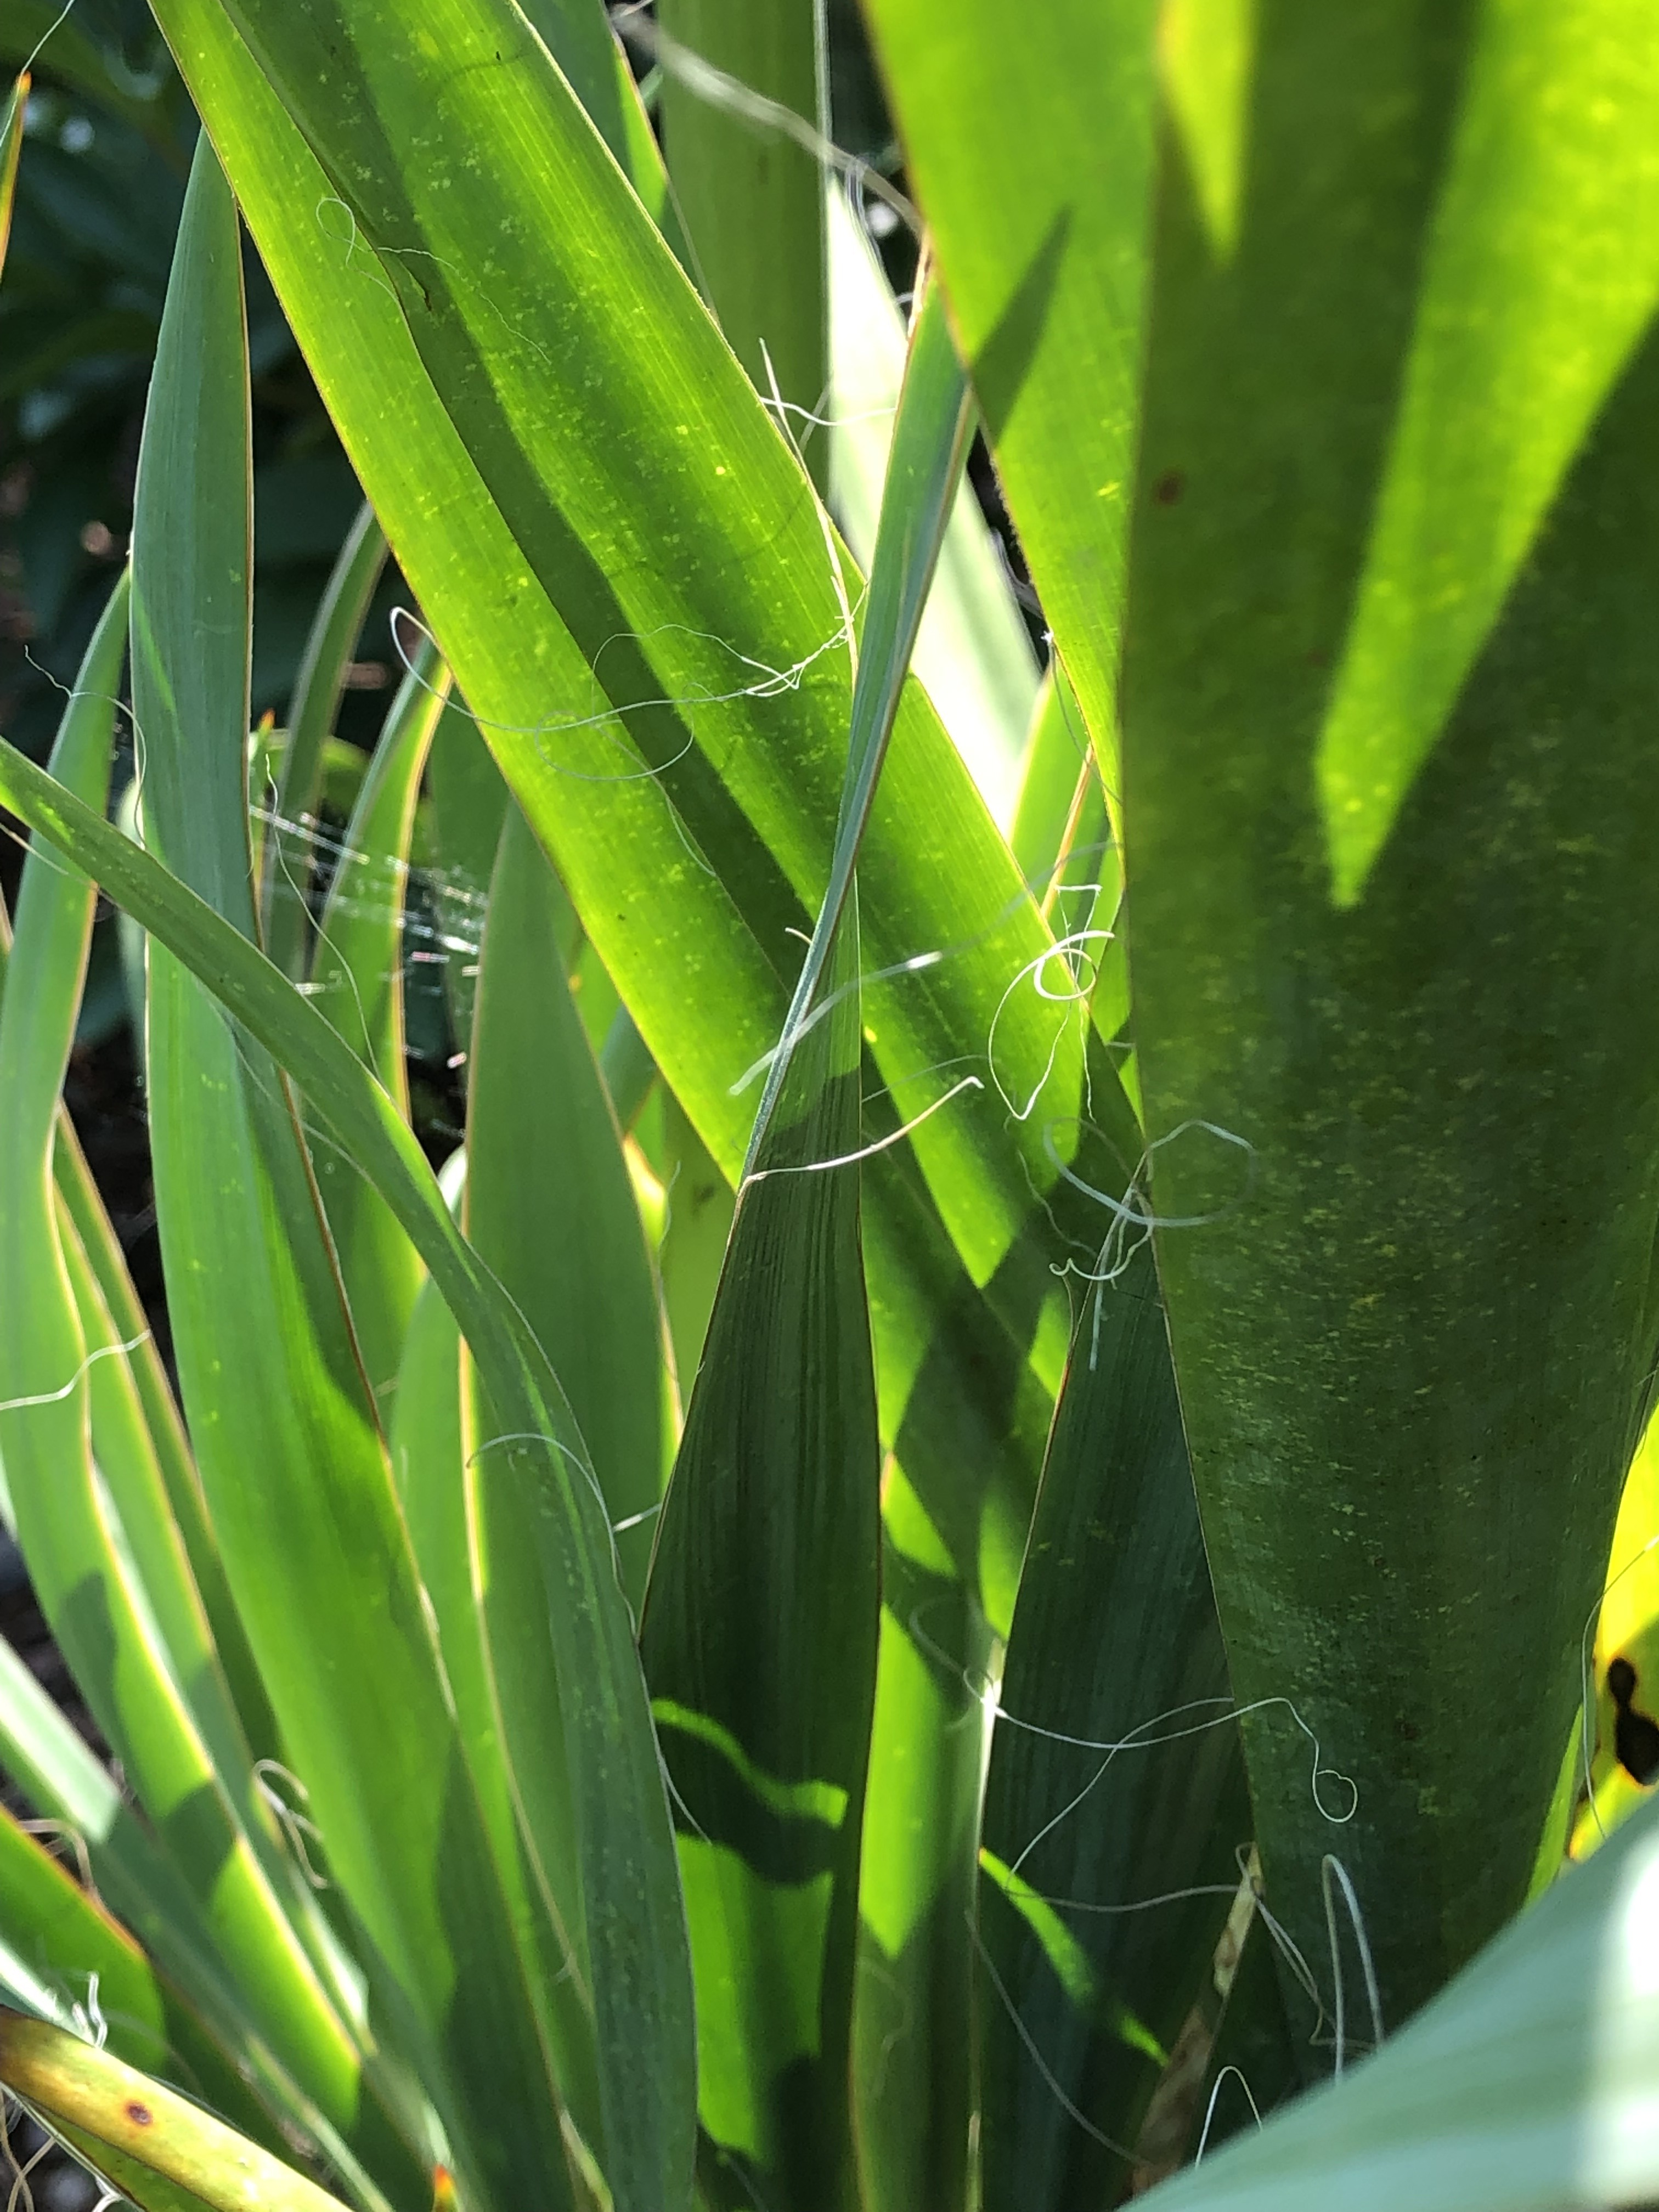 yucca has spear-like leaves